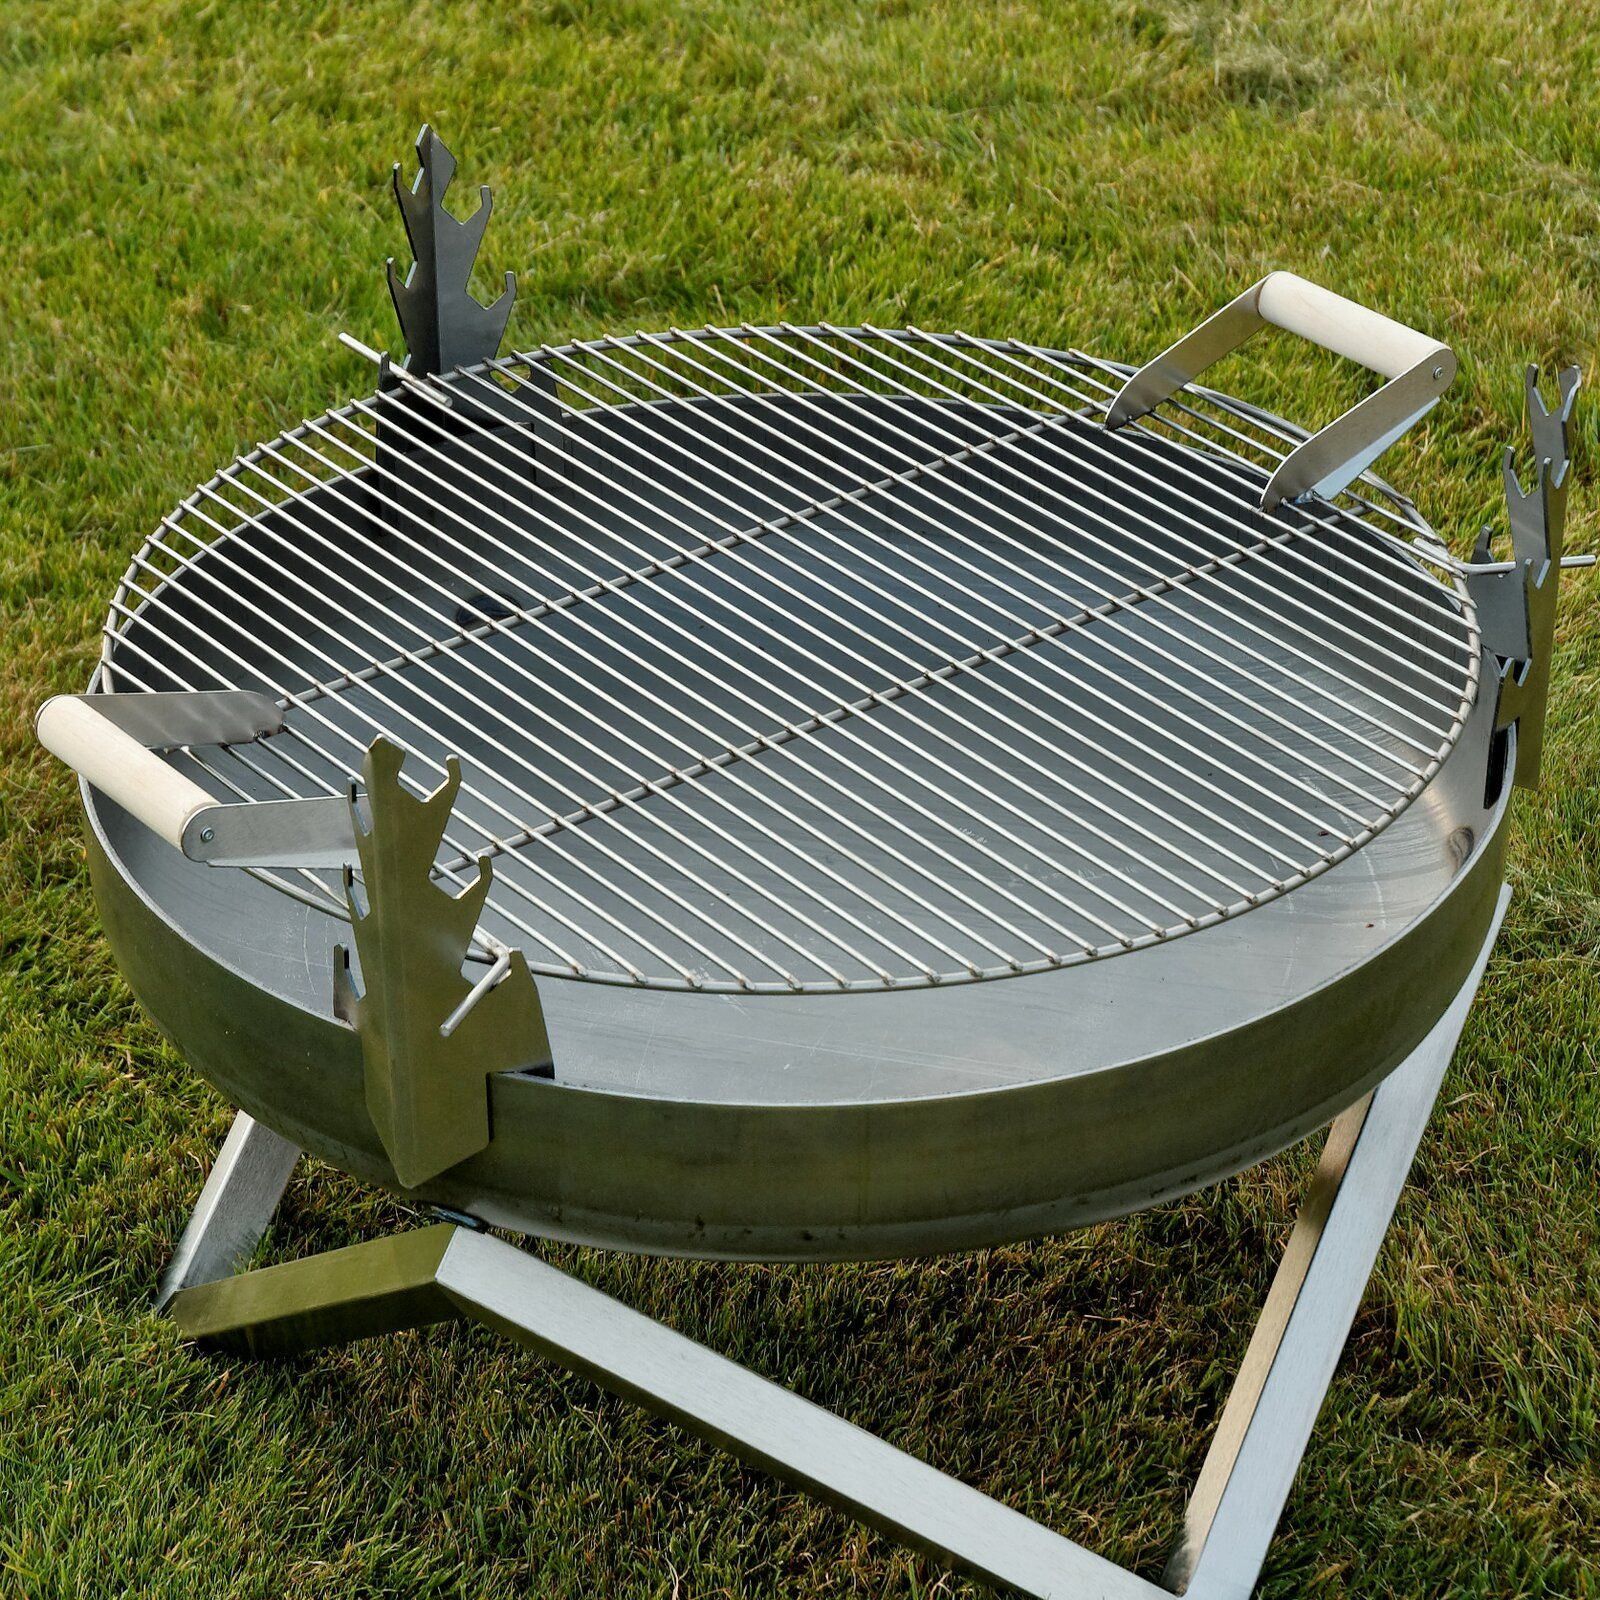 Image Result For Fire Pit Grill Grate With Images Fire Pit Bbq